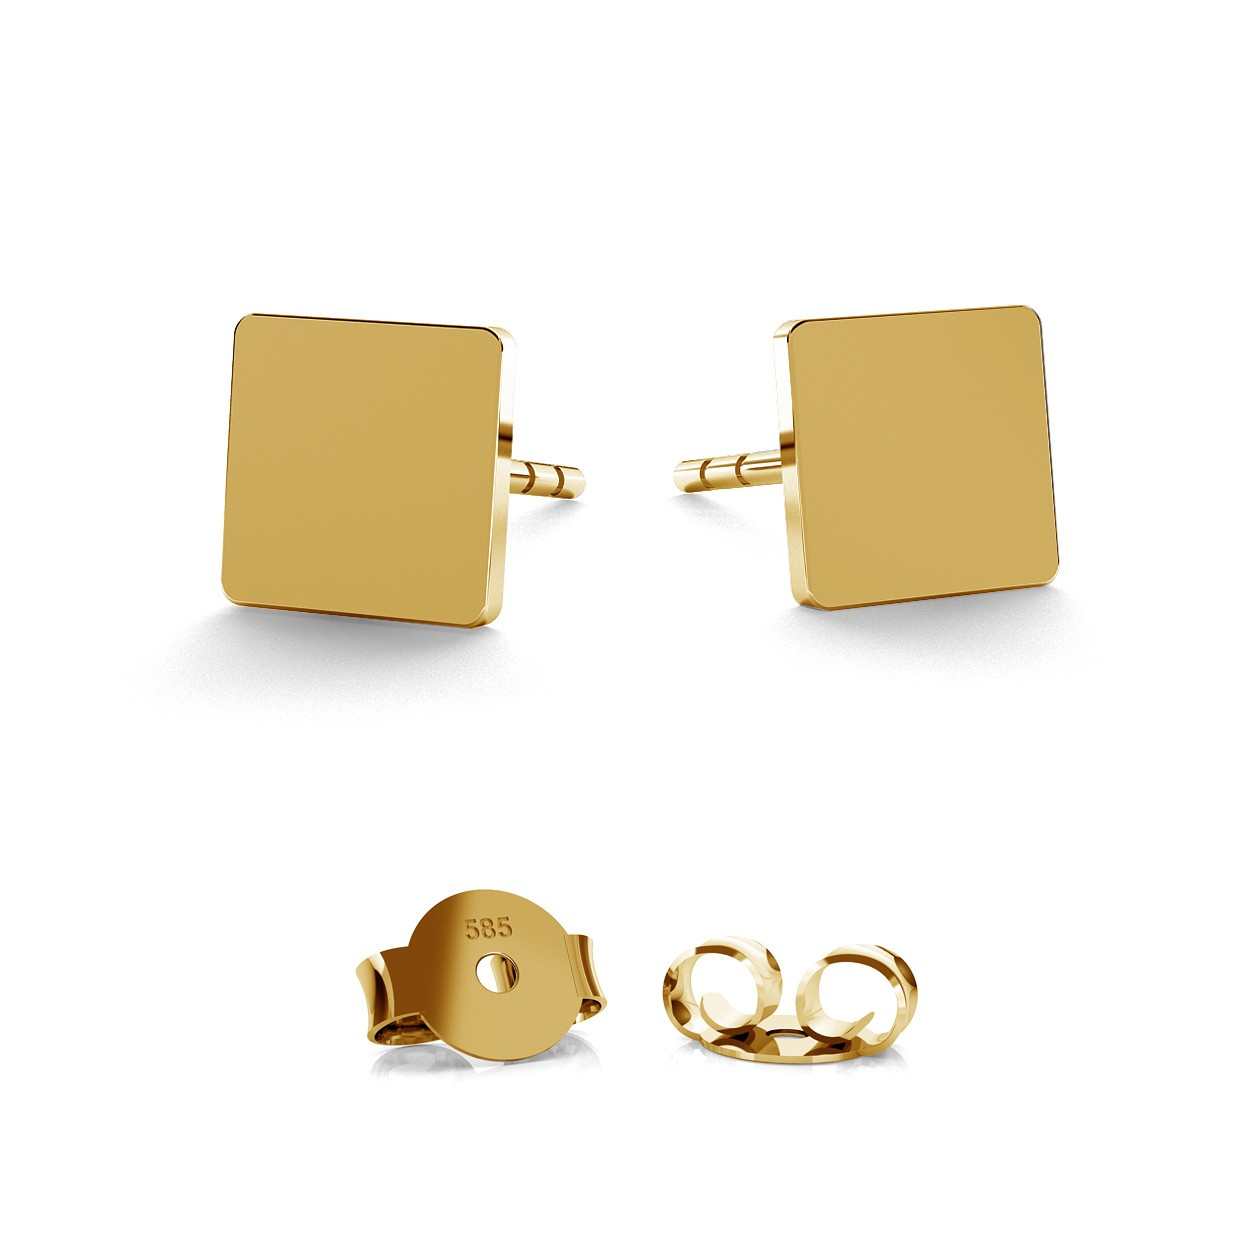 14K GOLD SQUARE EARRING, MODEL 590